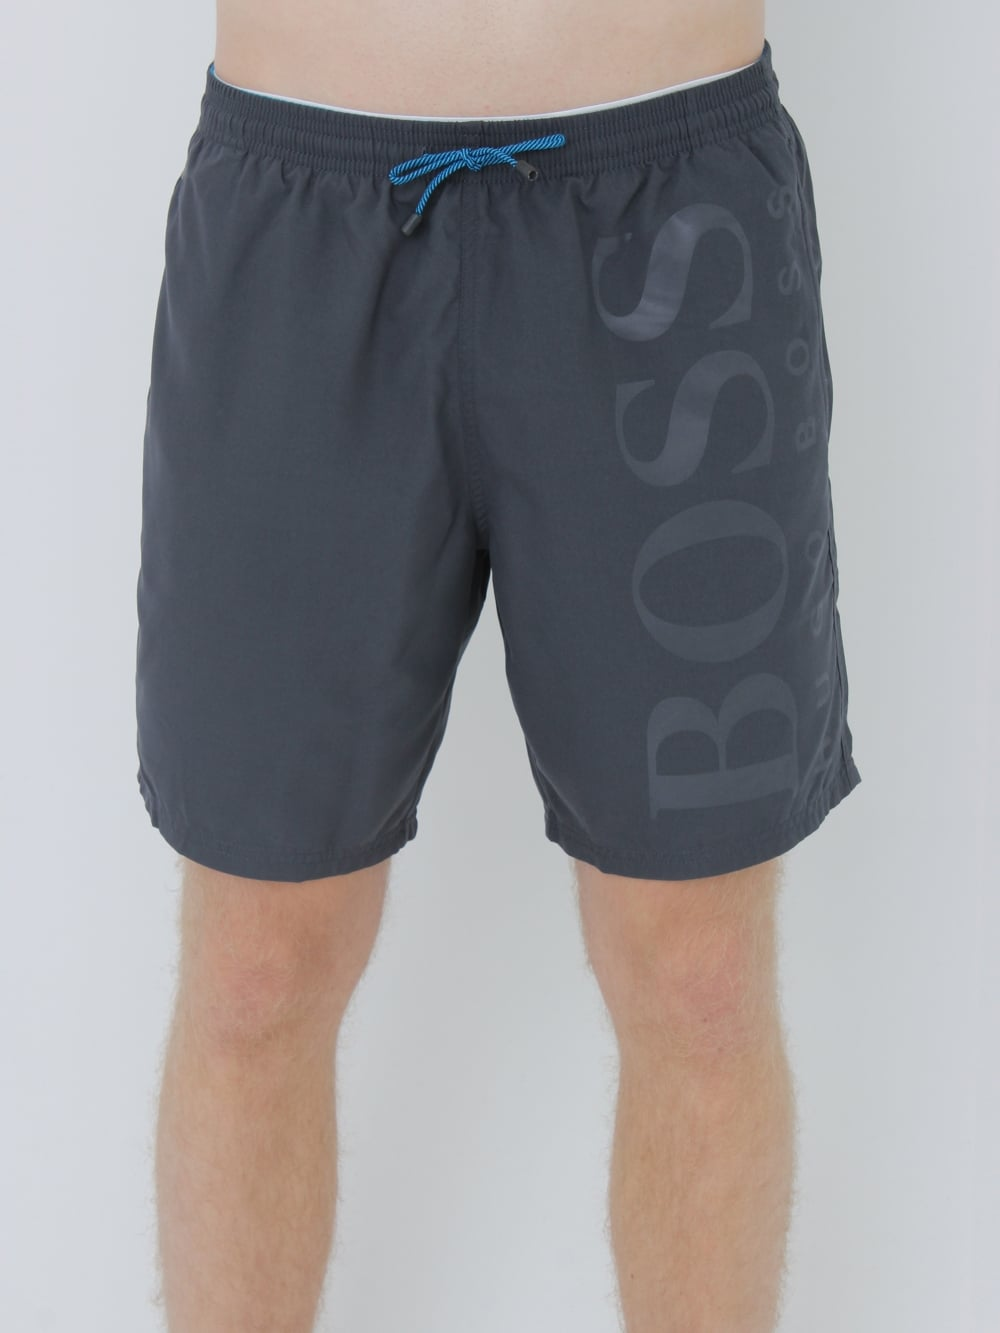 92c7ff4676 HUGO BOSS BOSS Hugo Boss Orca Swim Shorts in Black - Northern Threads